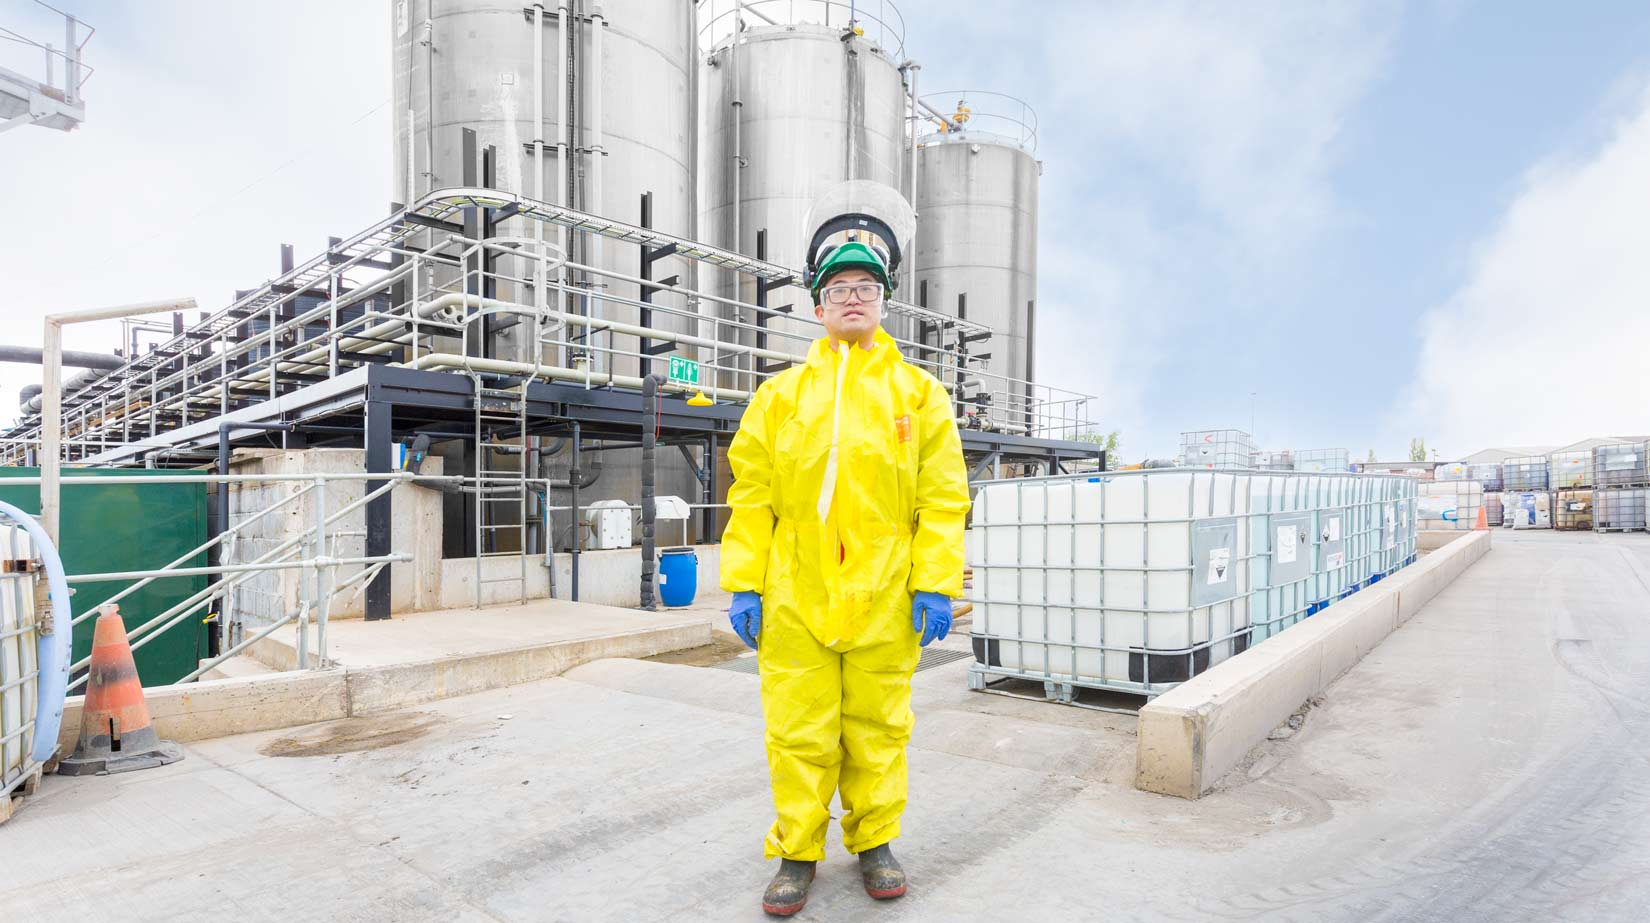 Industrial-photoshoot-chemical-plant